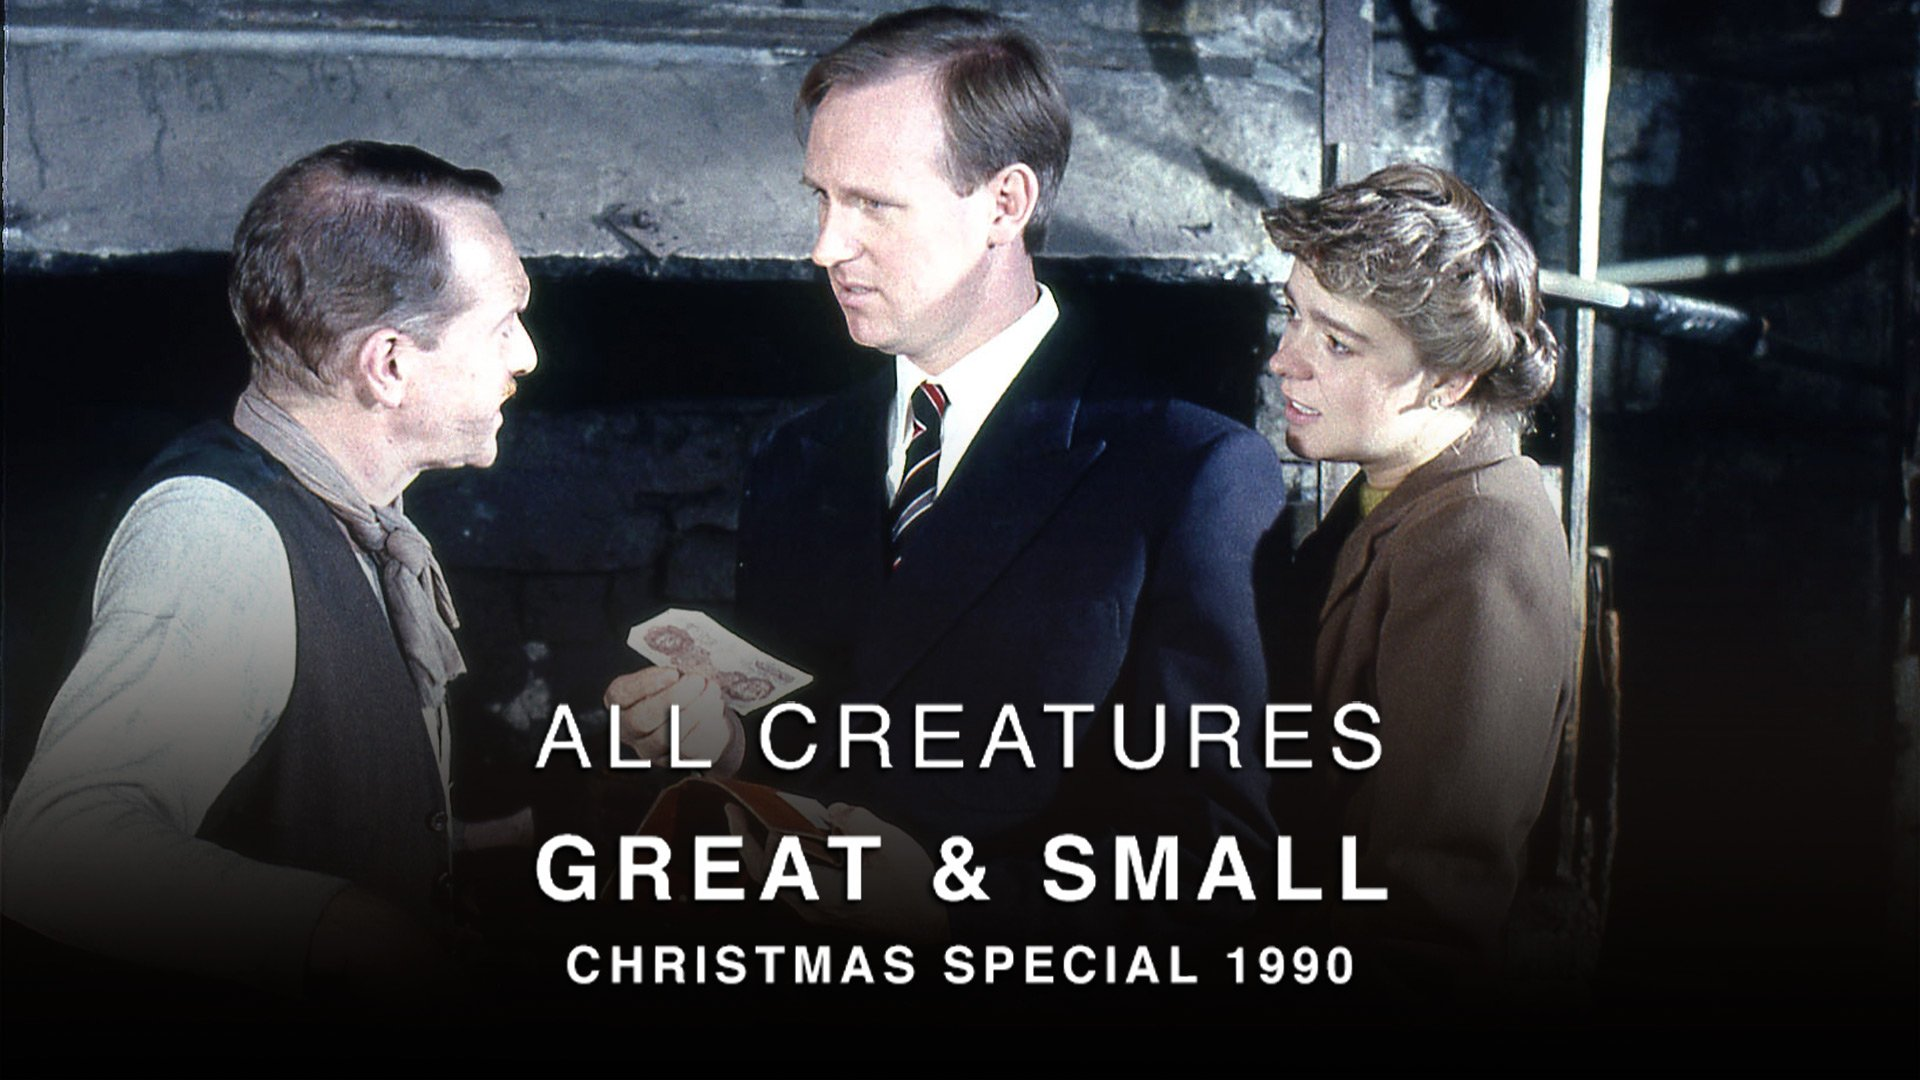 All Creatures Great and Small Christmas Special 1990 on BritBox UK